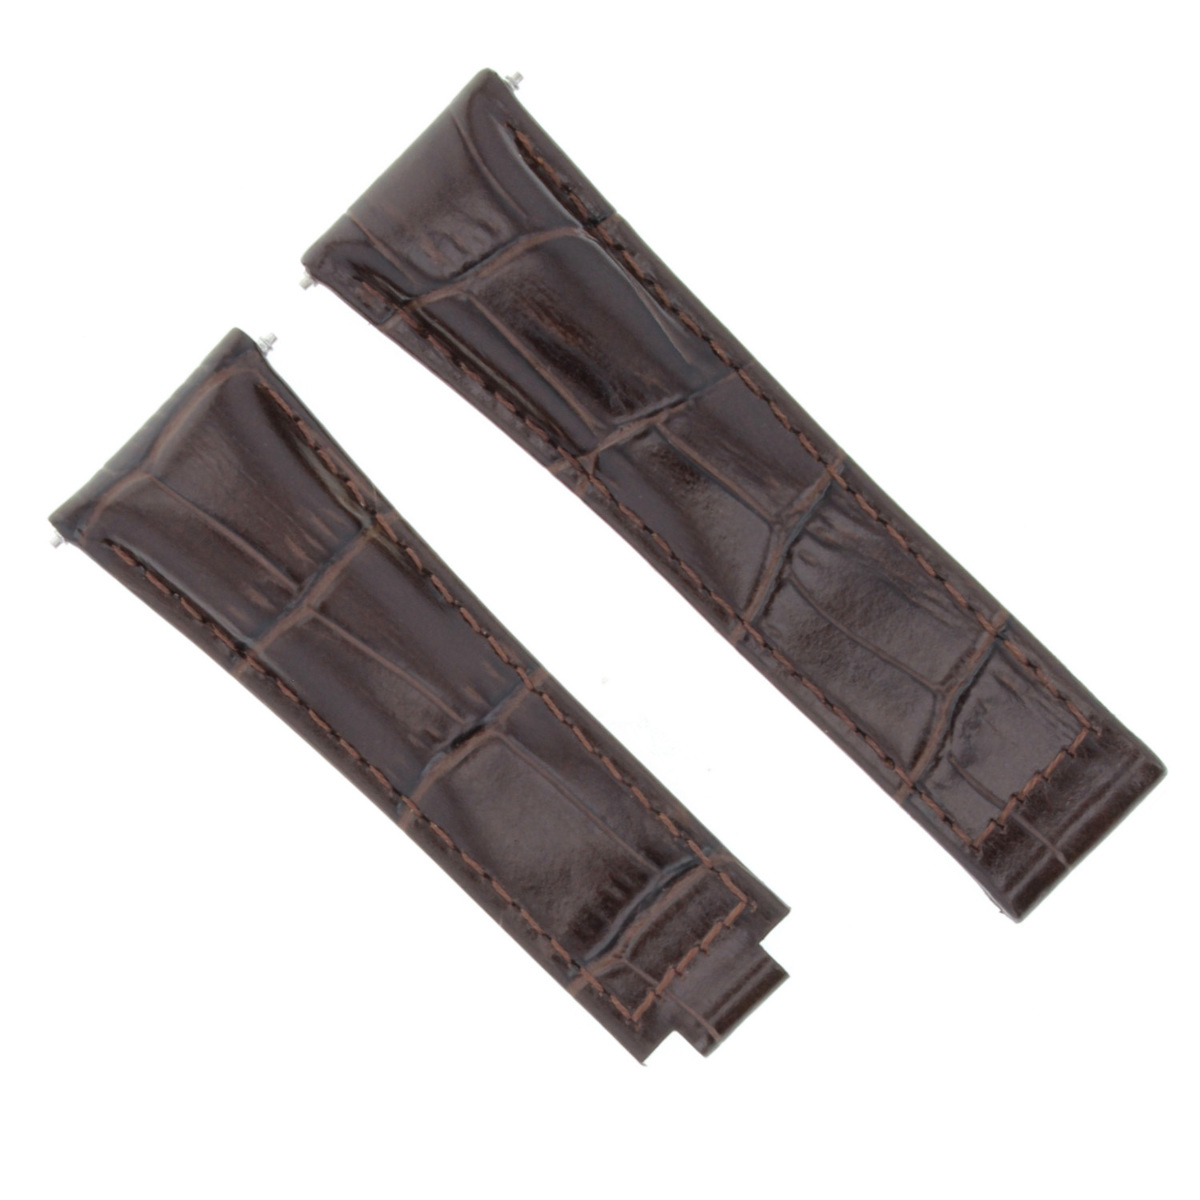 LEATHER WATCH STRAP BAND FOR ROLEX DAYTONA 16518 16519 16520 16528 D/BROWN SHORT